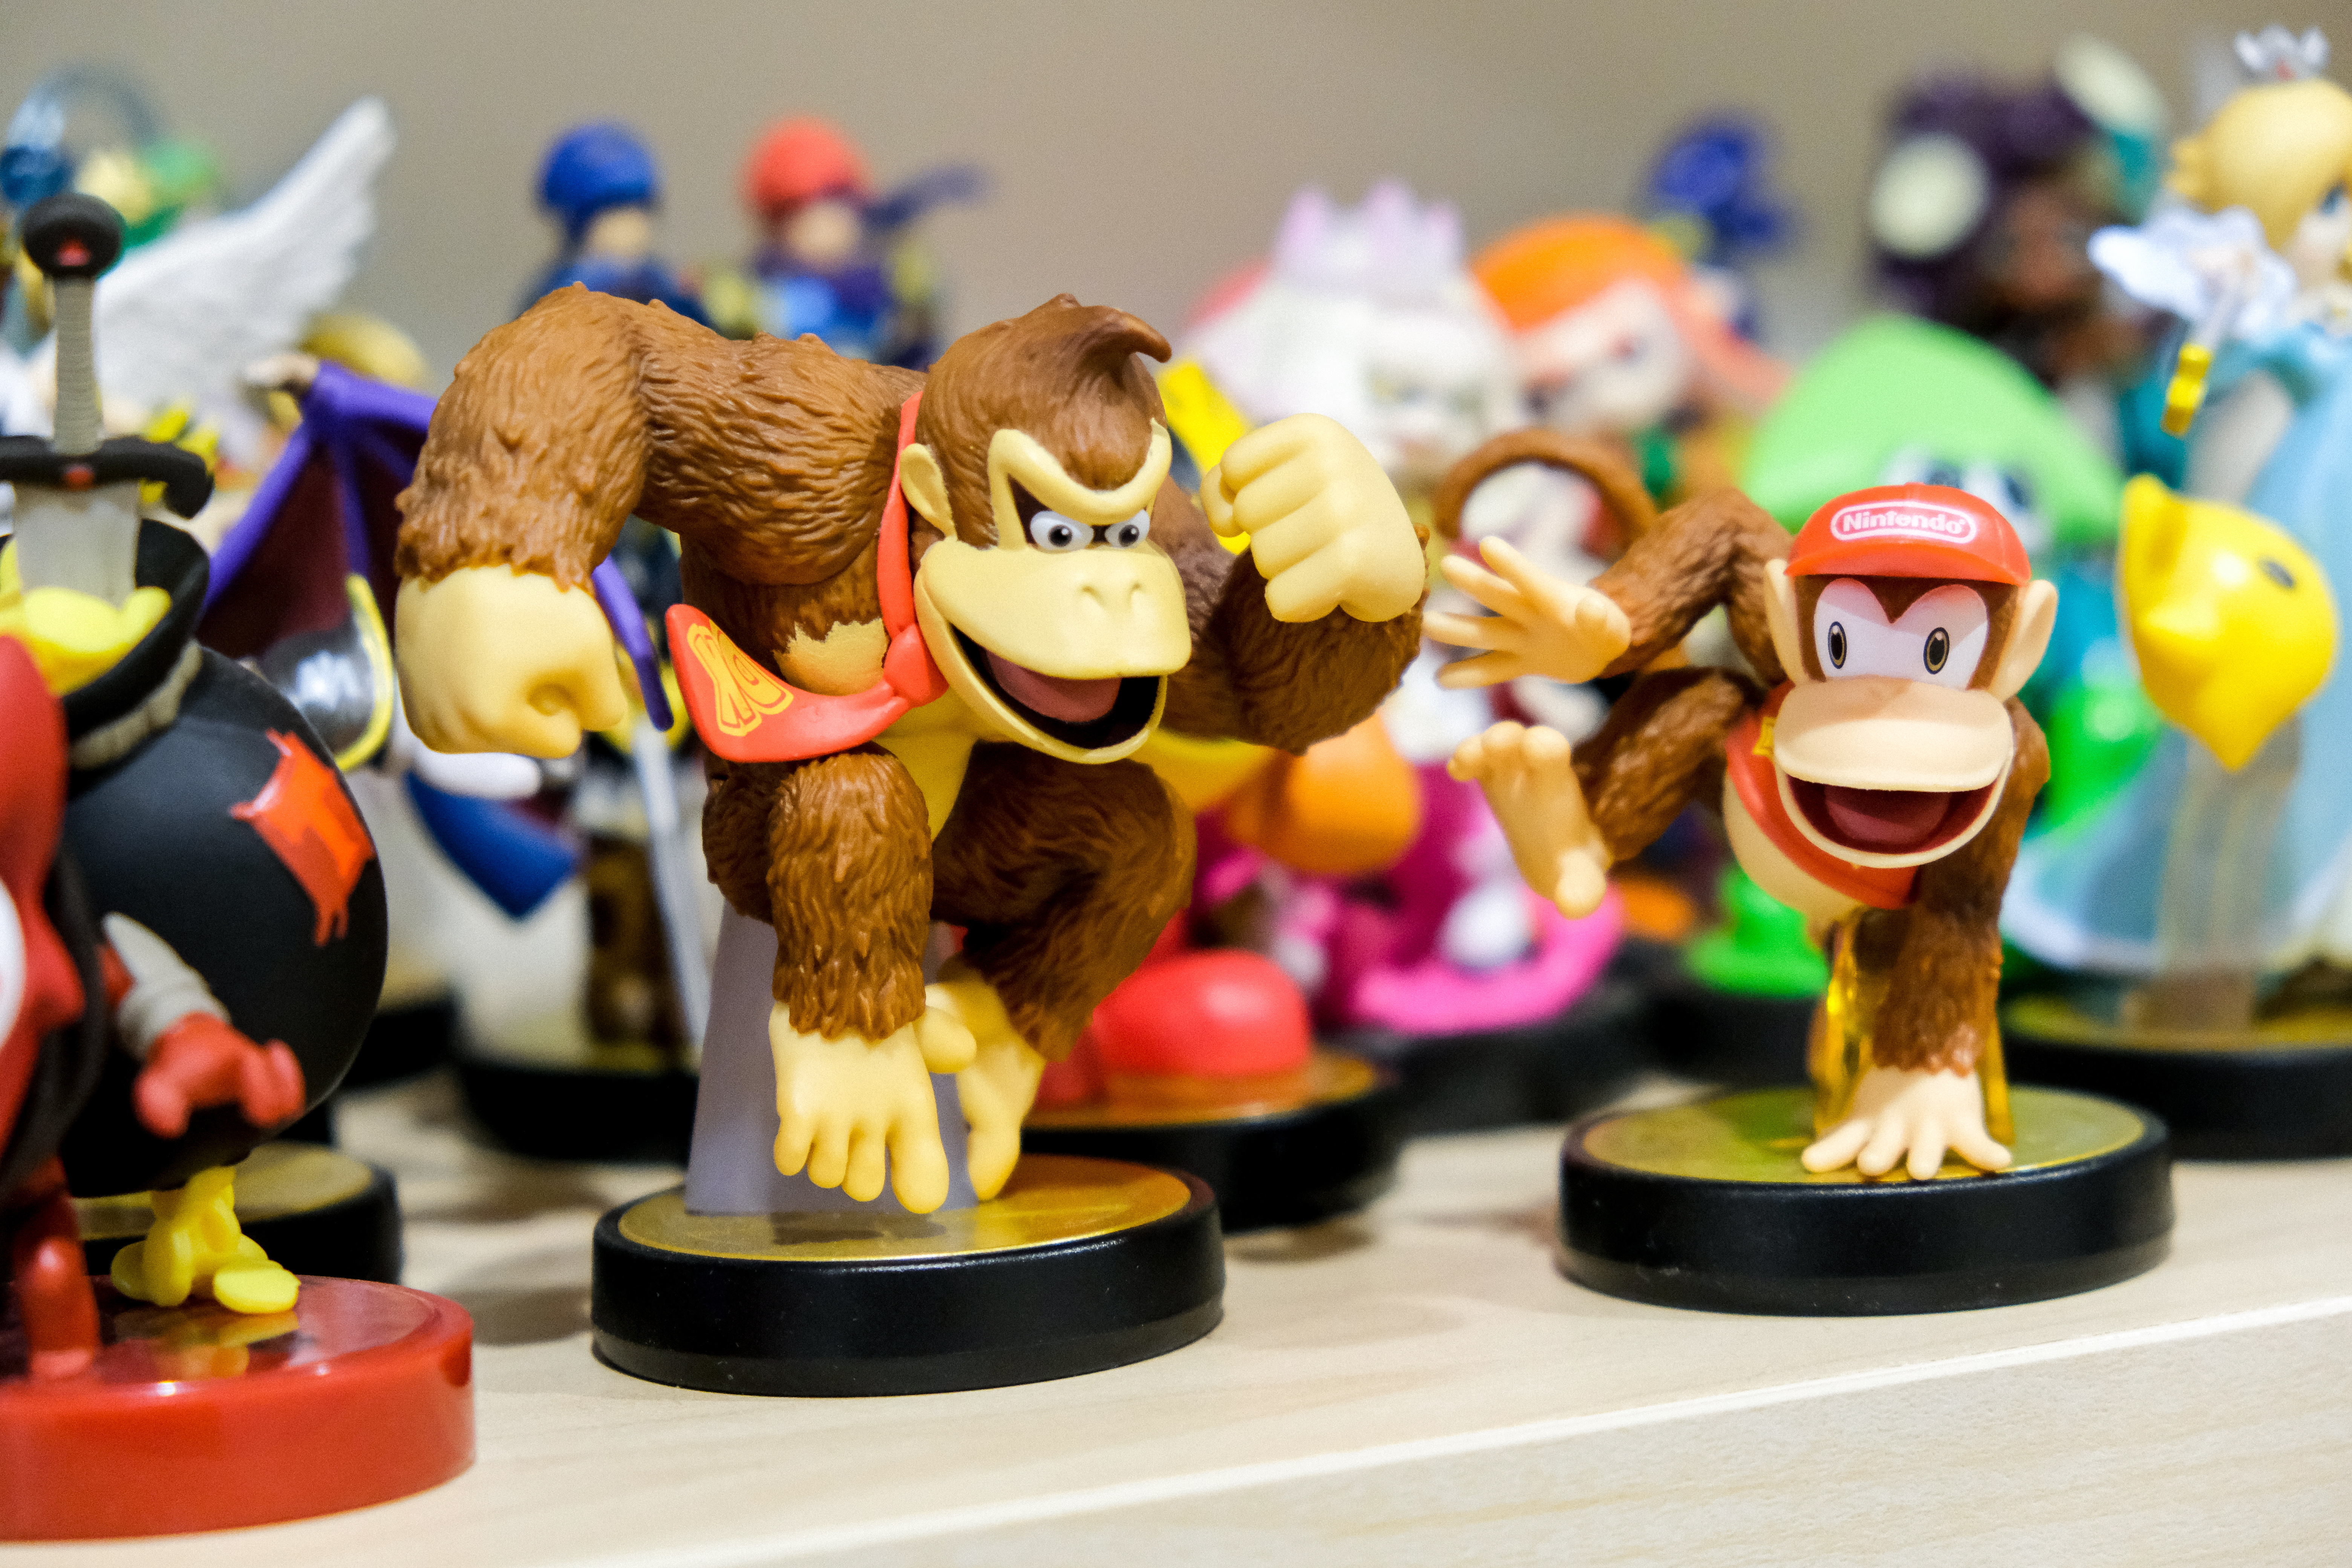 Nintendo amiibo toys of characters of Donkey Kong, and Diddy Kong along with various characters from other franchises.